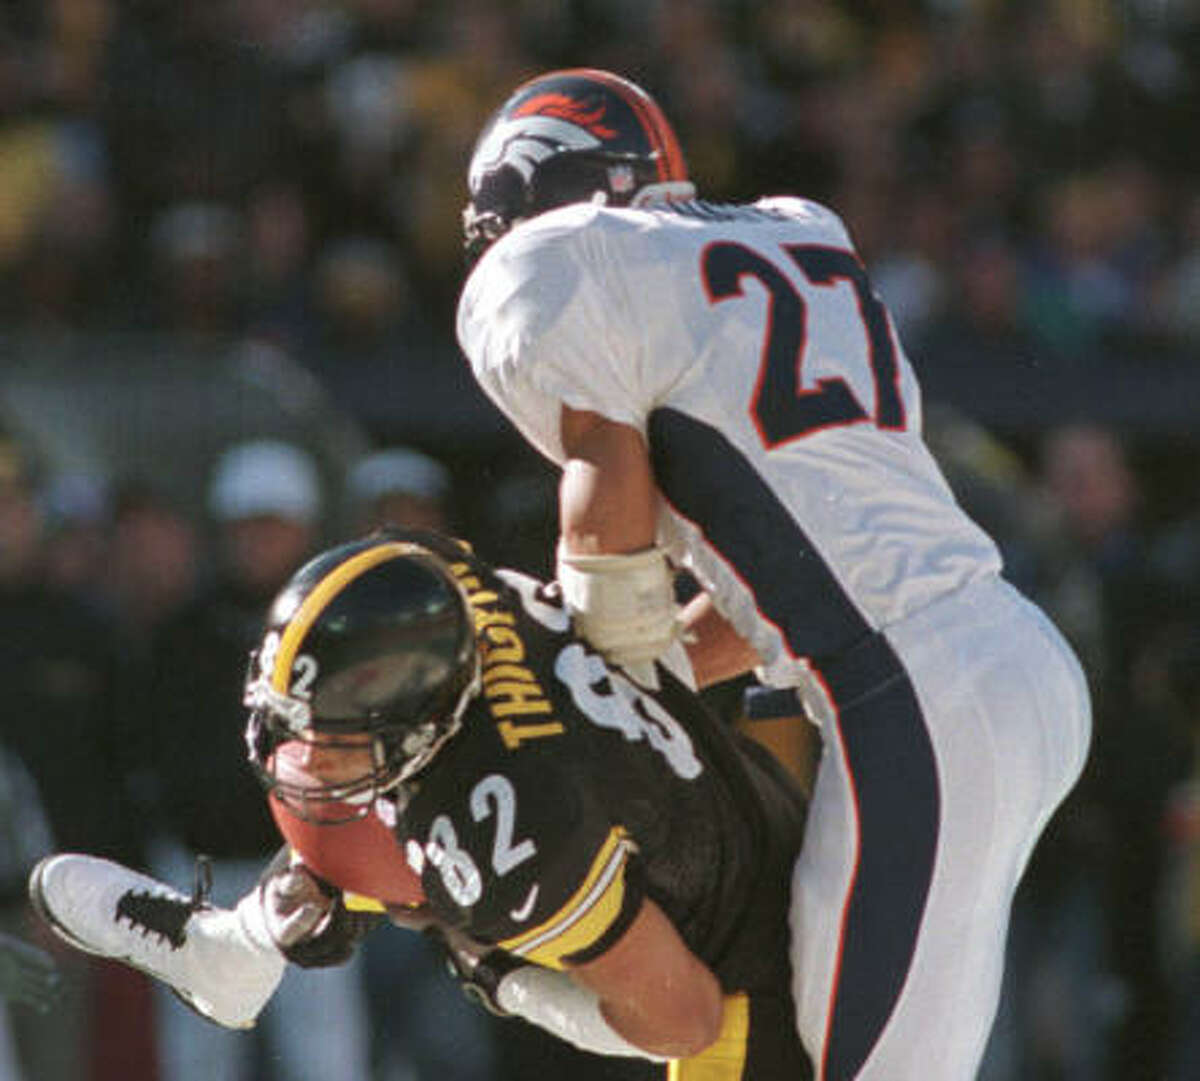 Steve Atwater, S, 1989-99 (Broncos, Jets) Atwater knocked many a receiver senseless in then-lethal AFC West.